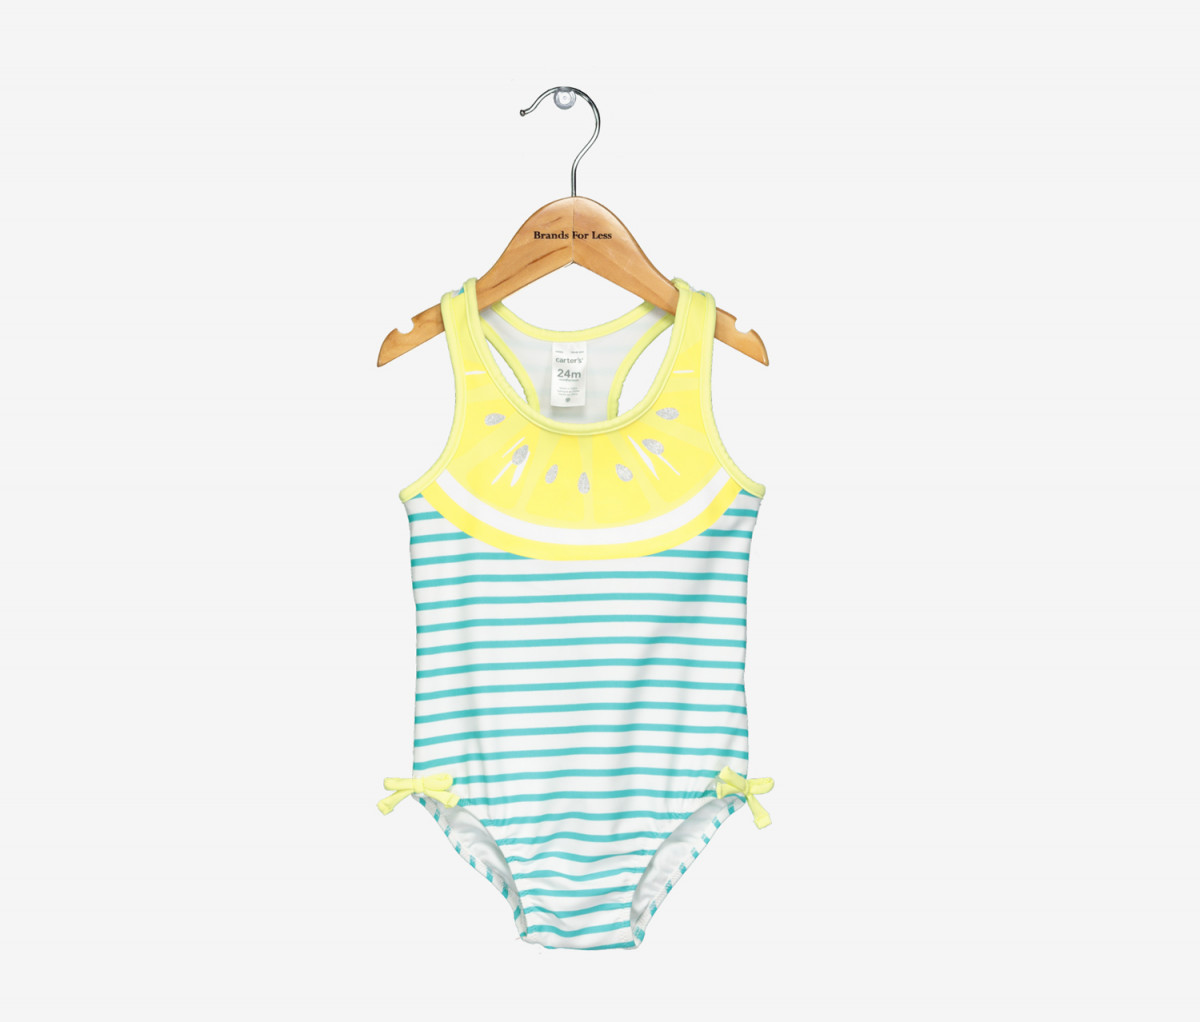 Carters Baby Girls Lemon-Print Swimsuit  Yellow/Turquoise/White